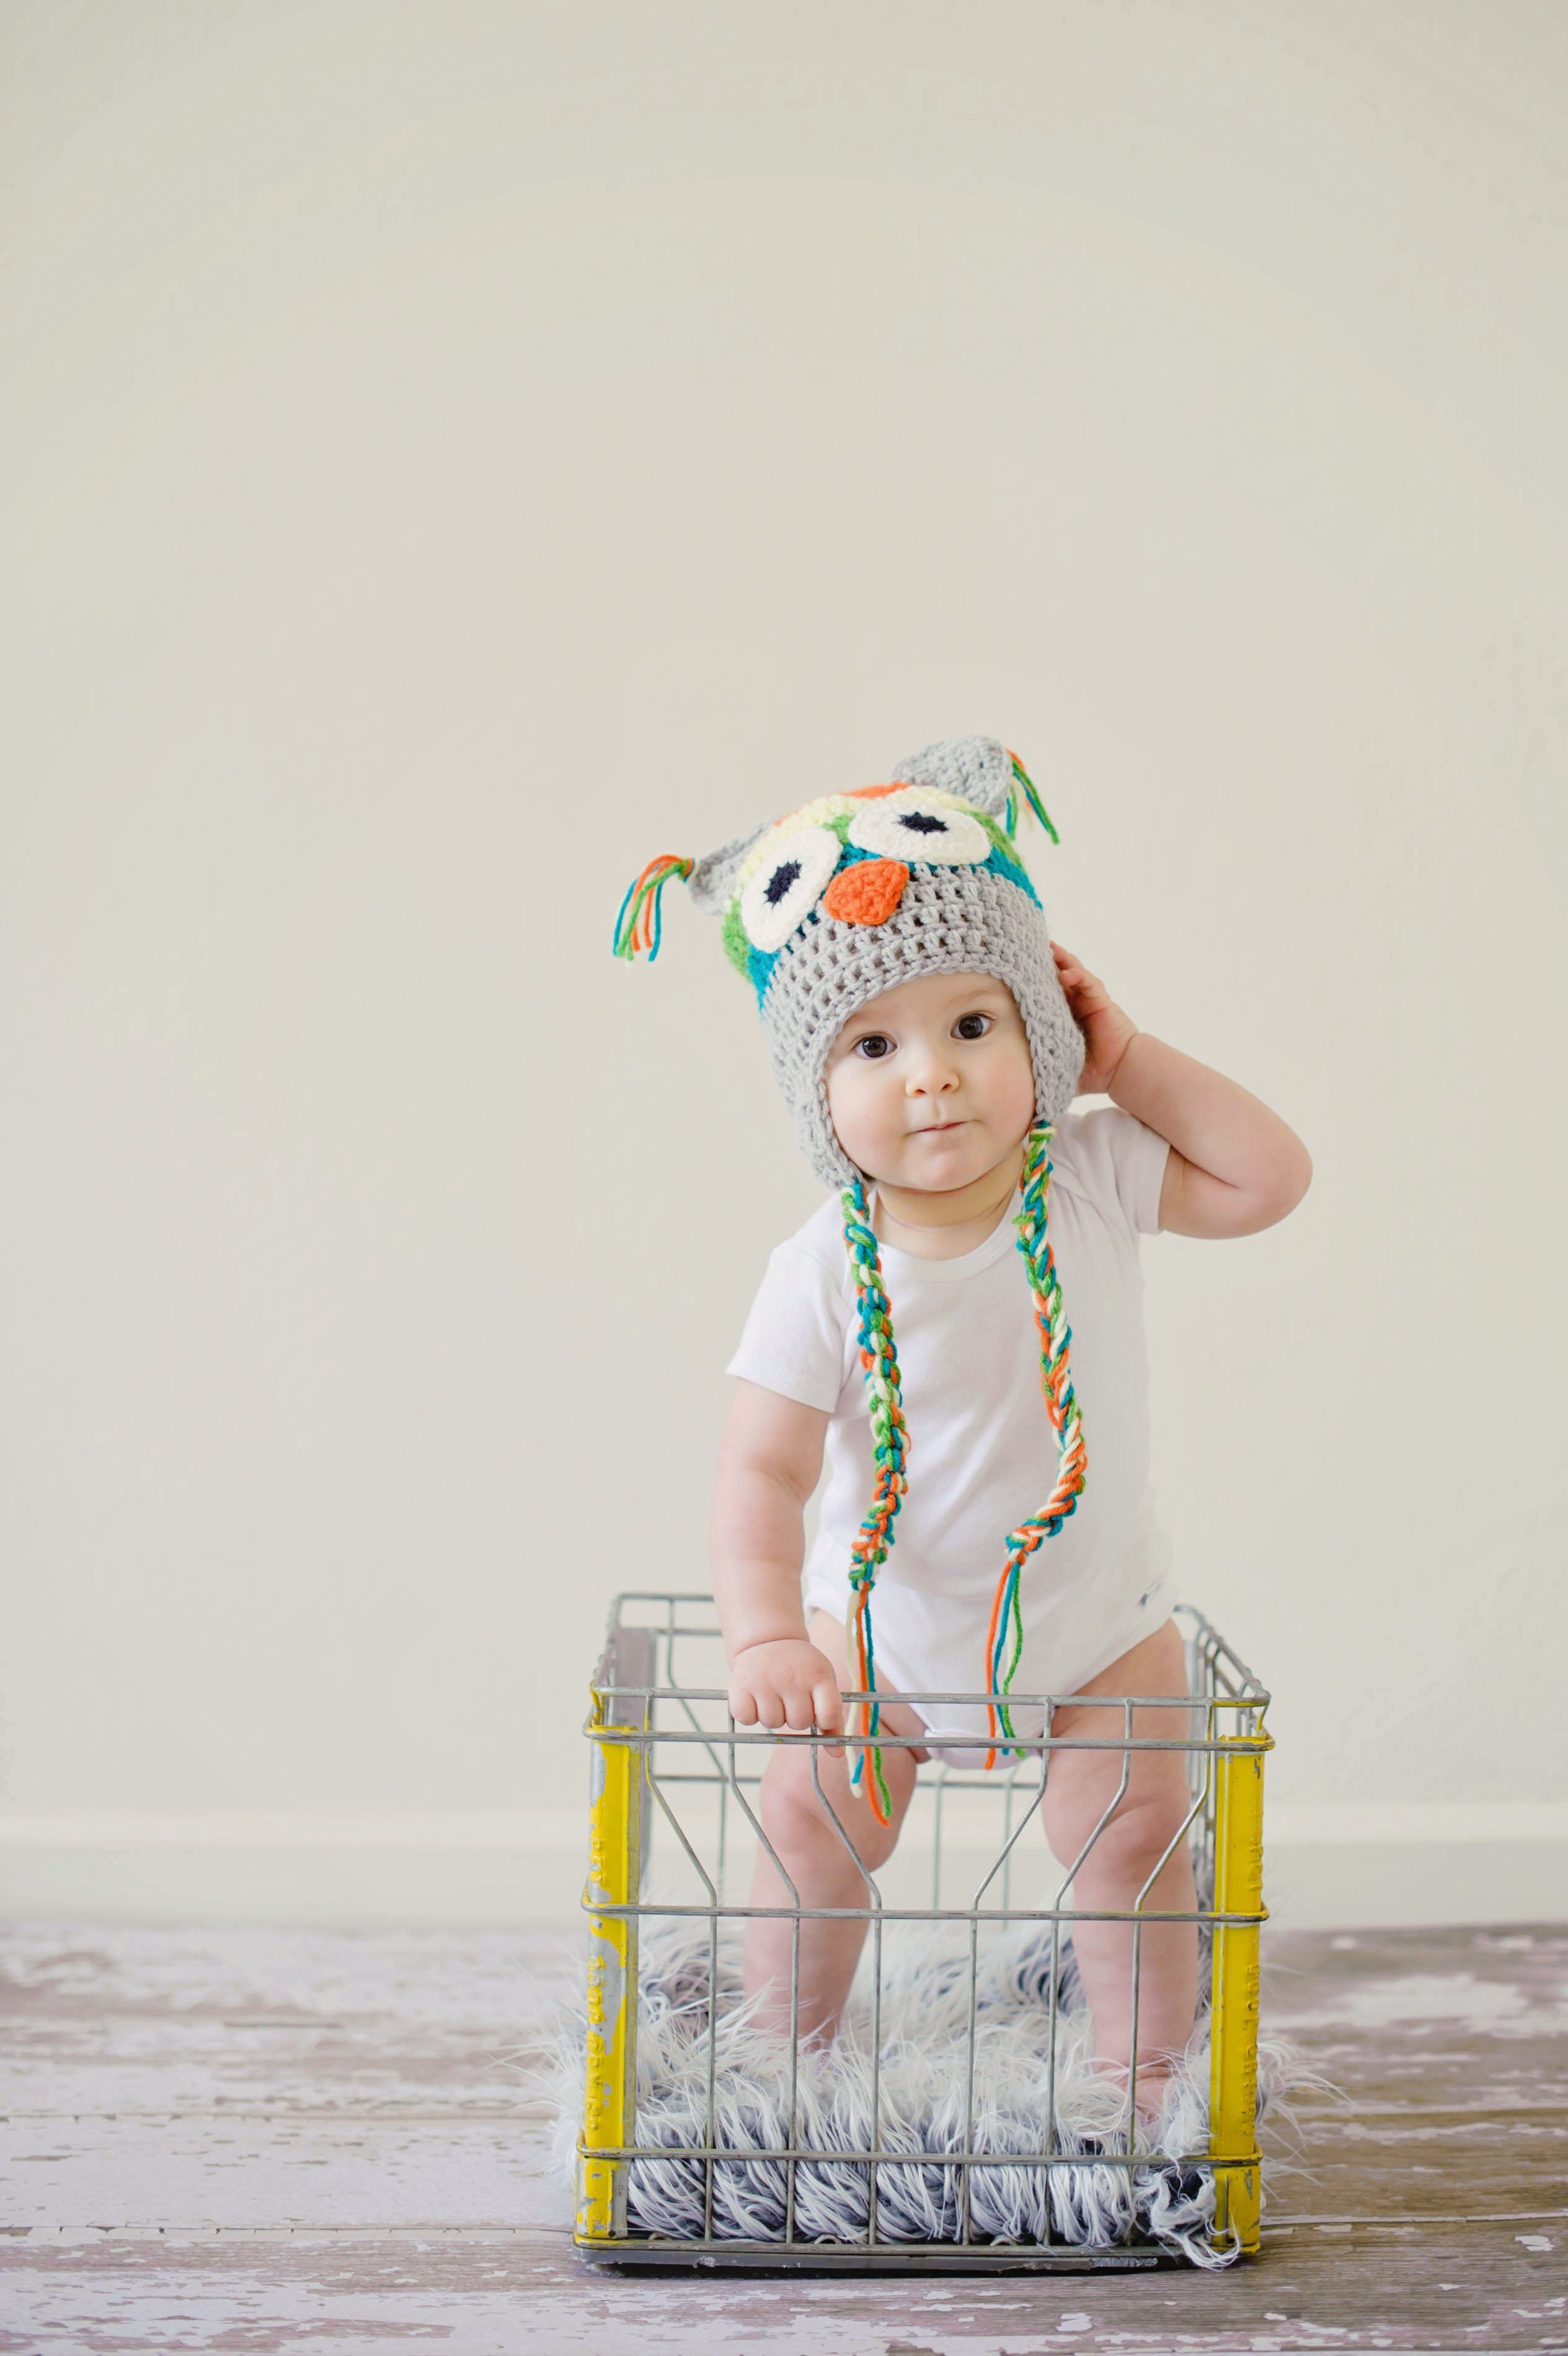 Toddler Standing on Basket